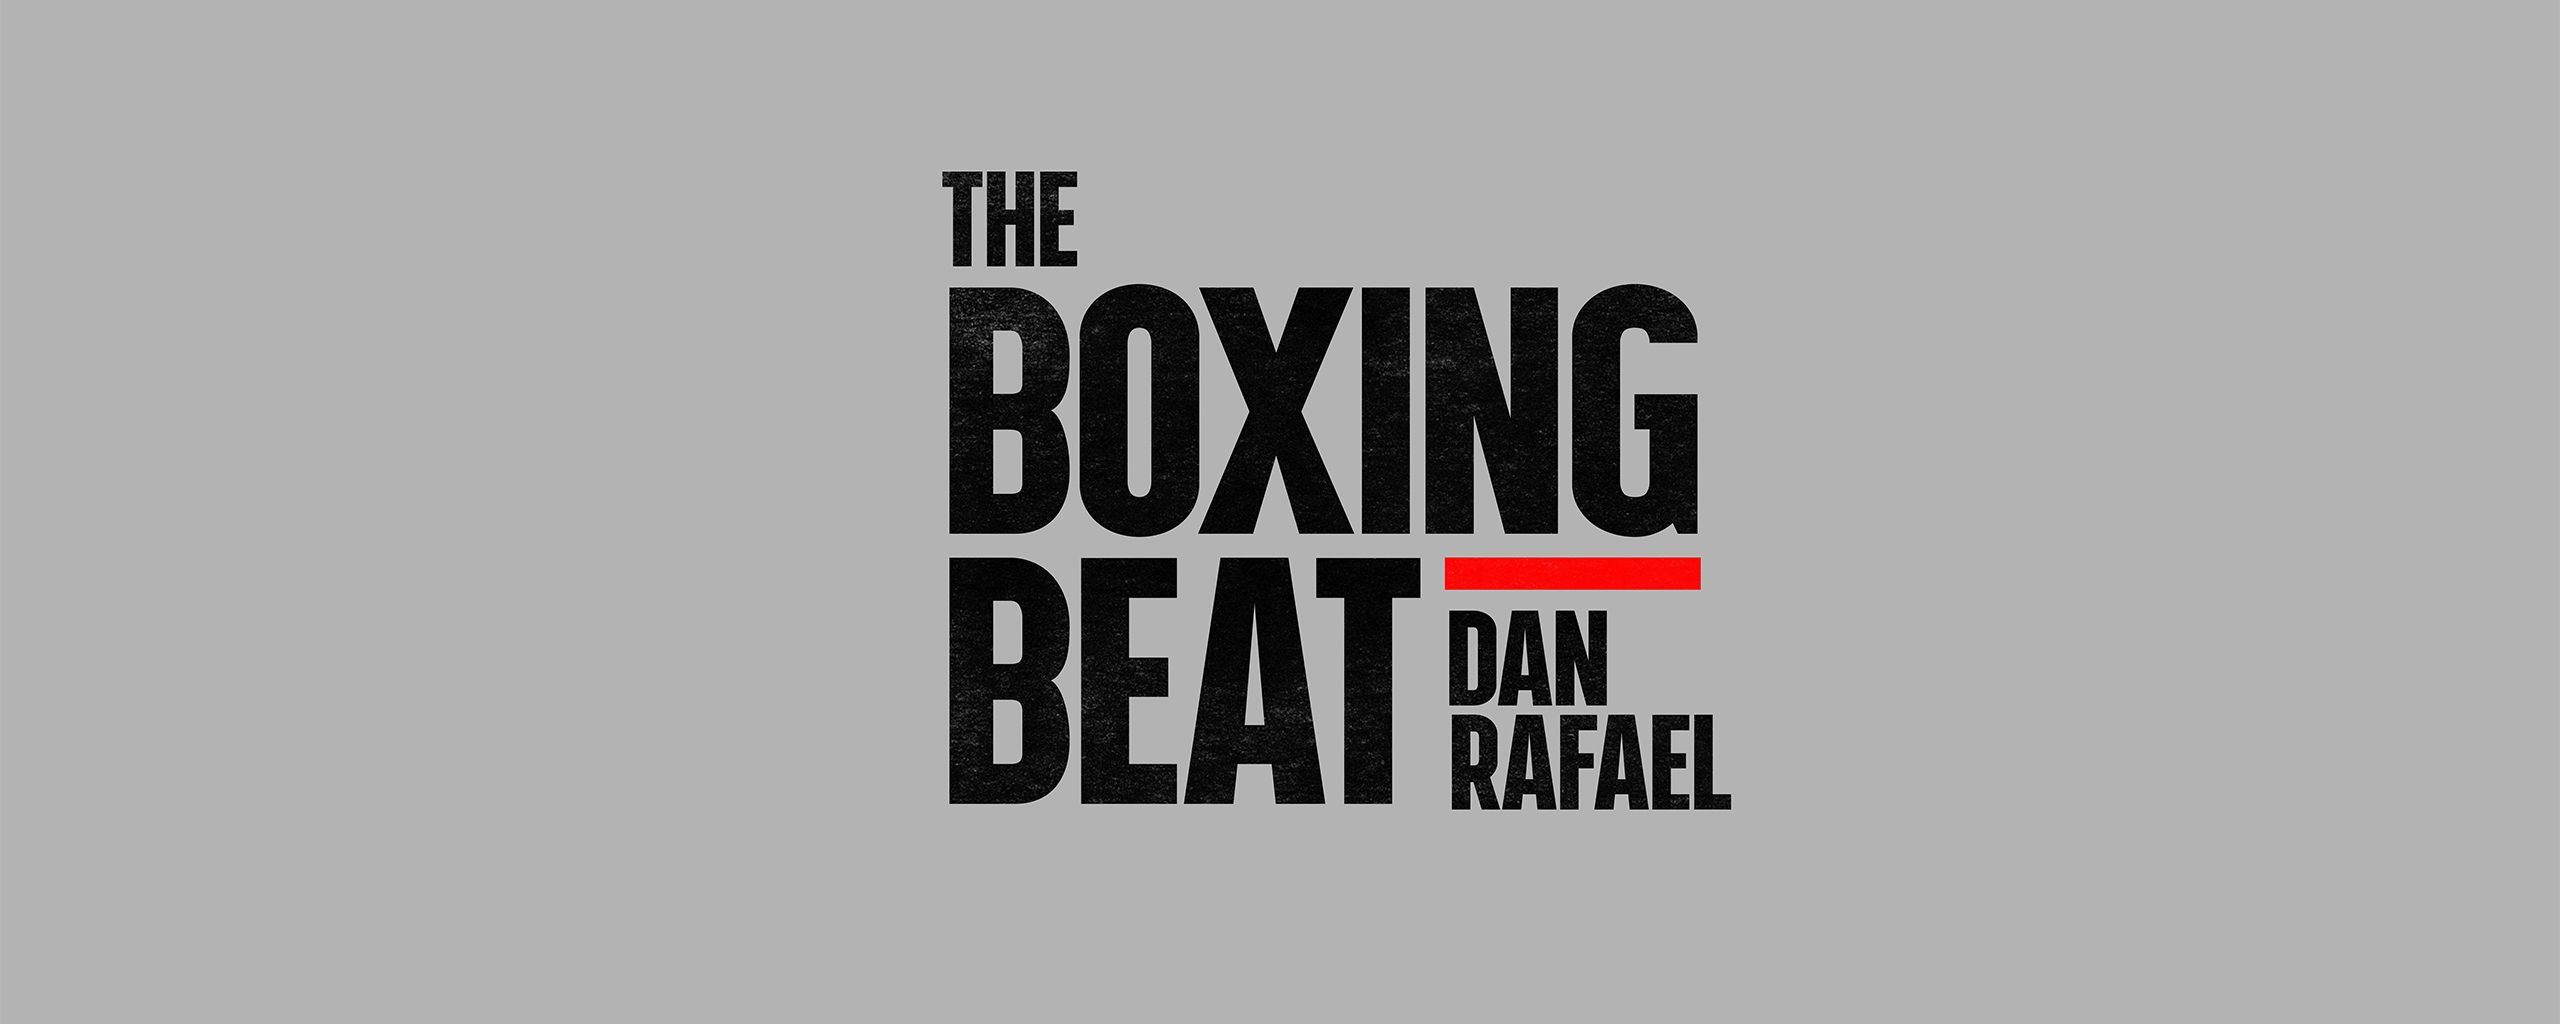 The Boxing Beat